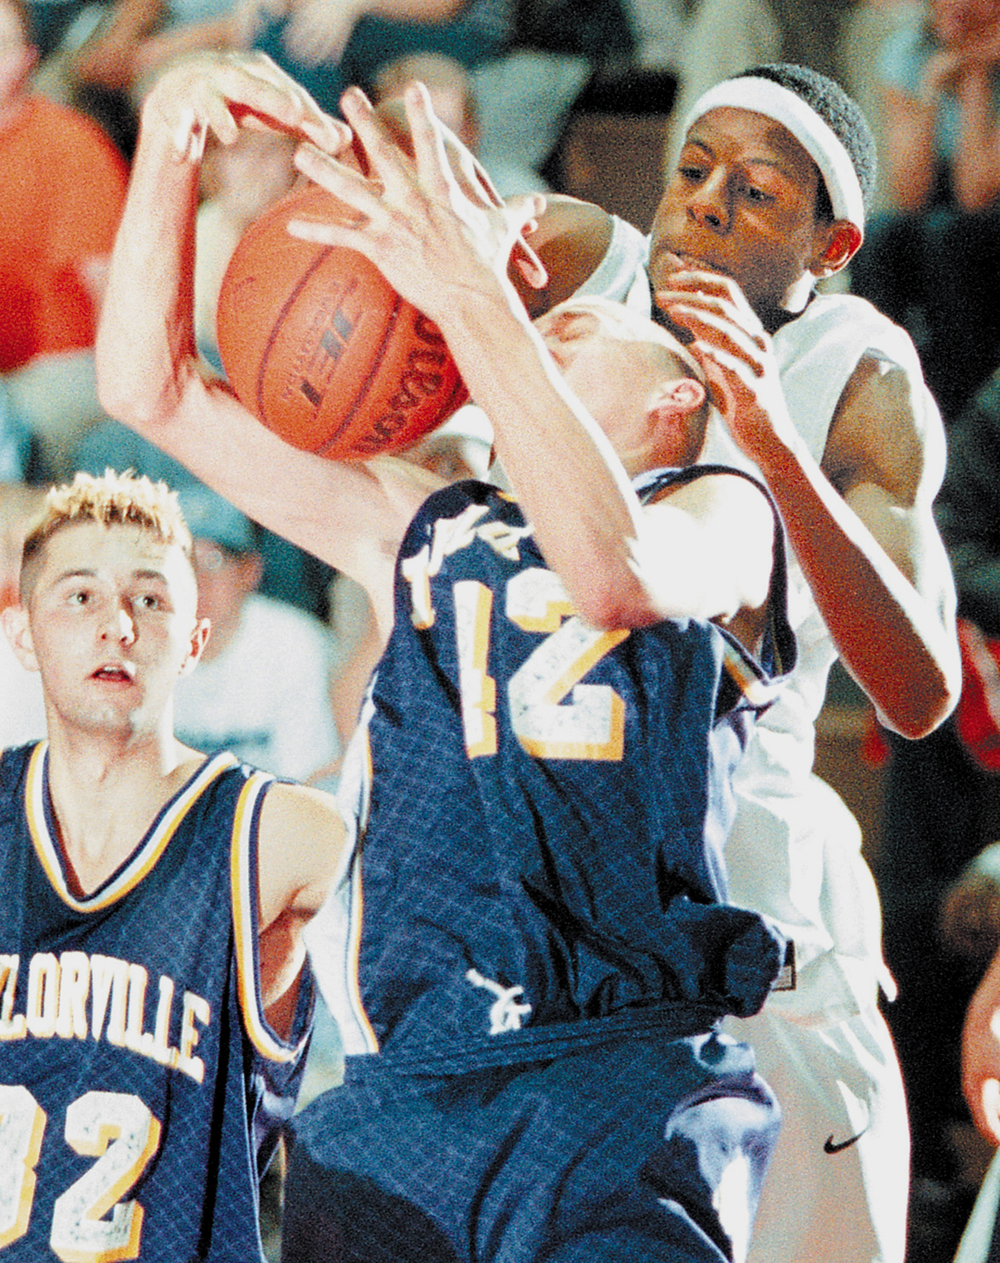 Lanphier's Andre Iguodala reaches over Taylorville's Zach Hennings' head to block his shot during their game at Lanphier High on Friday, Jan. 12, 2001. File/The State Journal-Register